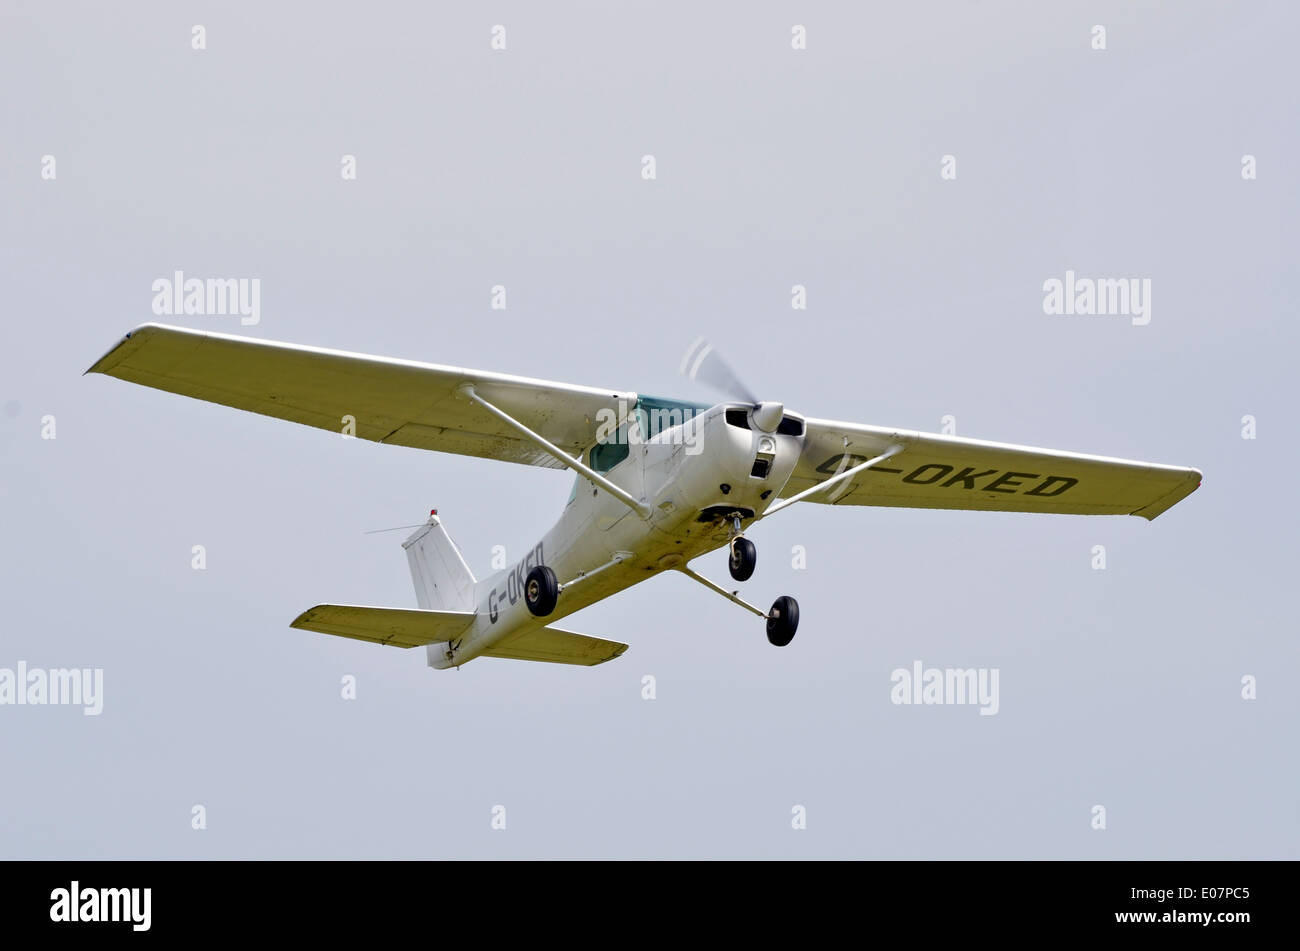 Cessna 150L high wing monoplane light aircraft climbs out after taking off from Popham Airfield, Hamsphire, England - Stock Image